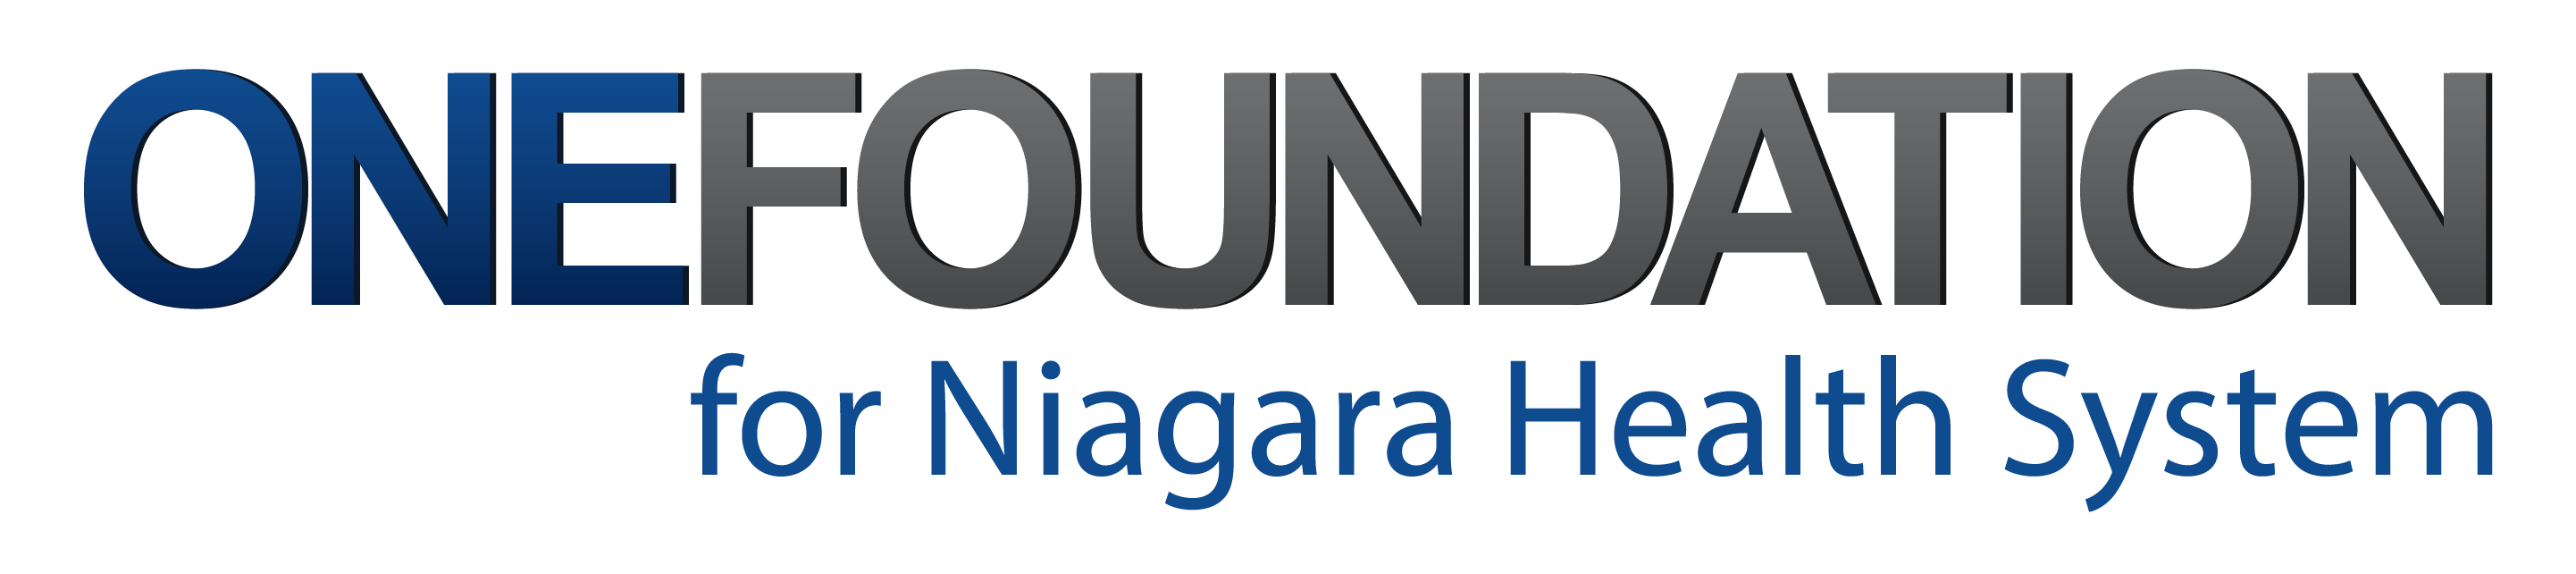 OneFoundation for Niagara Health System